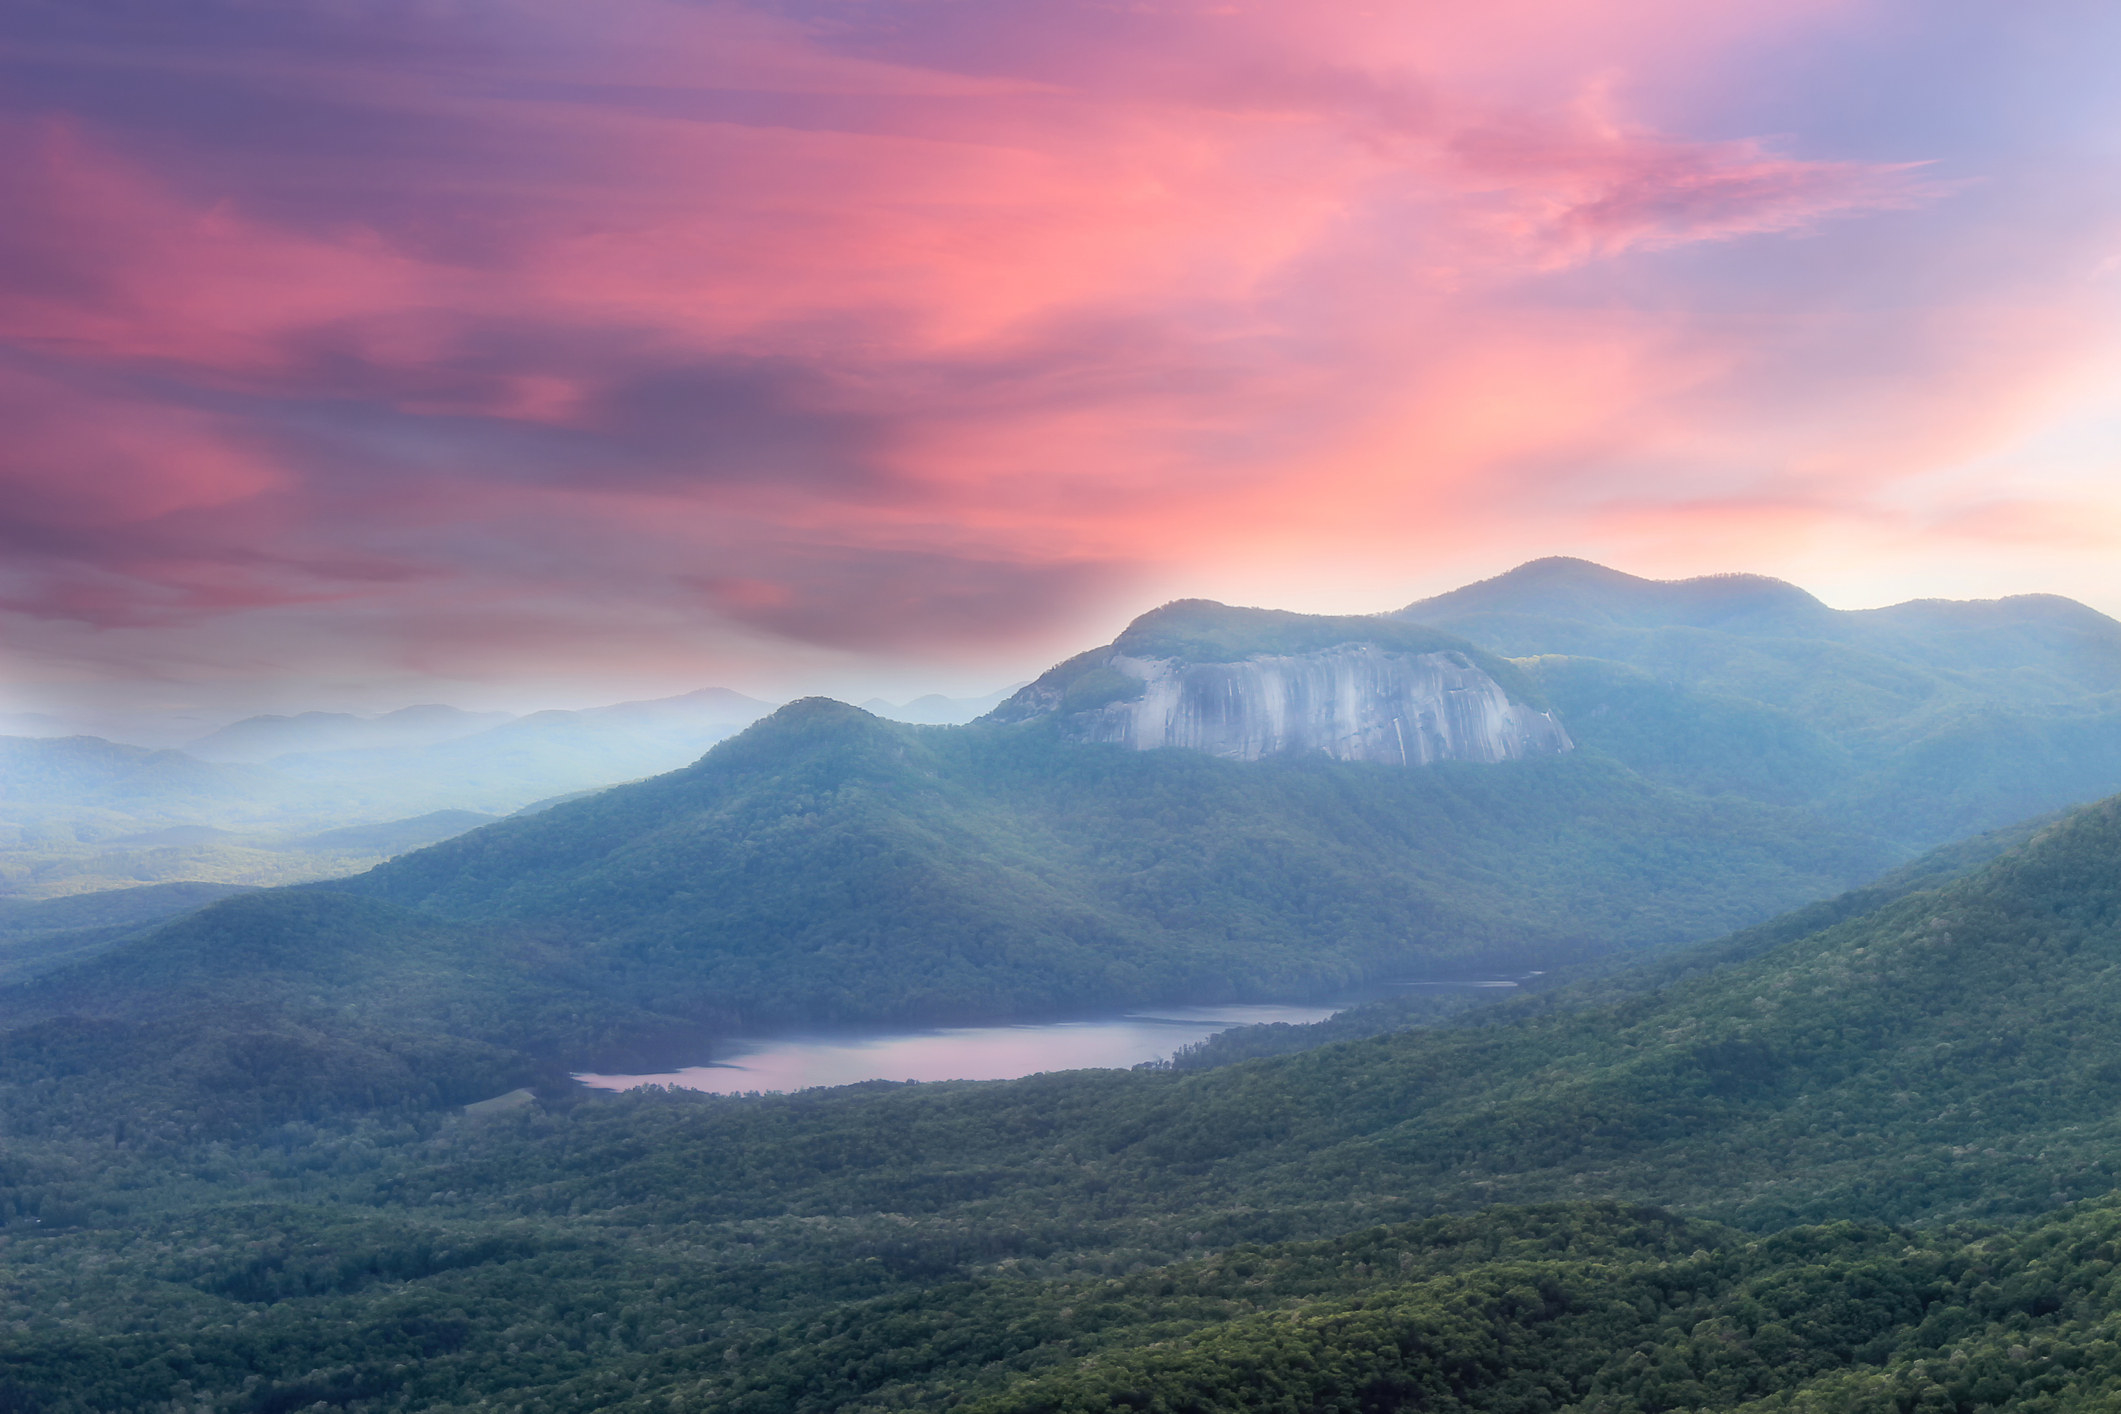 Soft, dreamy sunset view from Caesar's head overlook on Table Rock Mountain and Lake